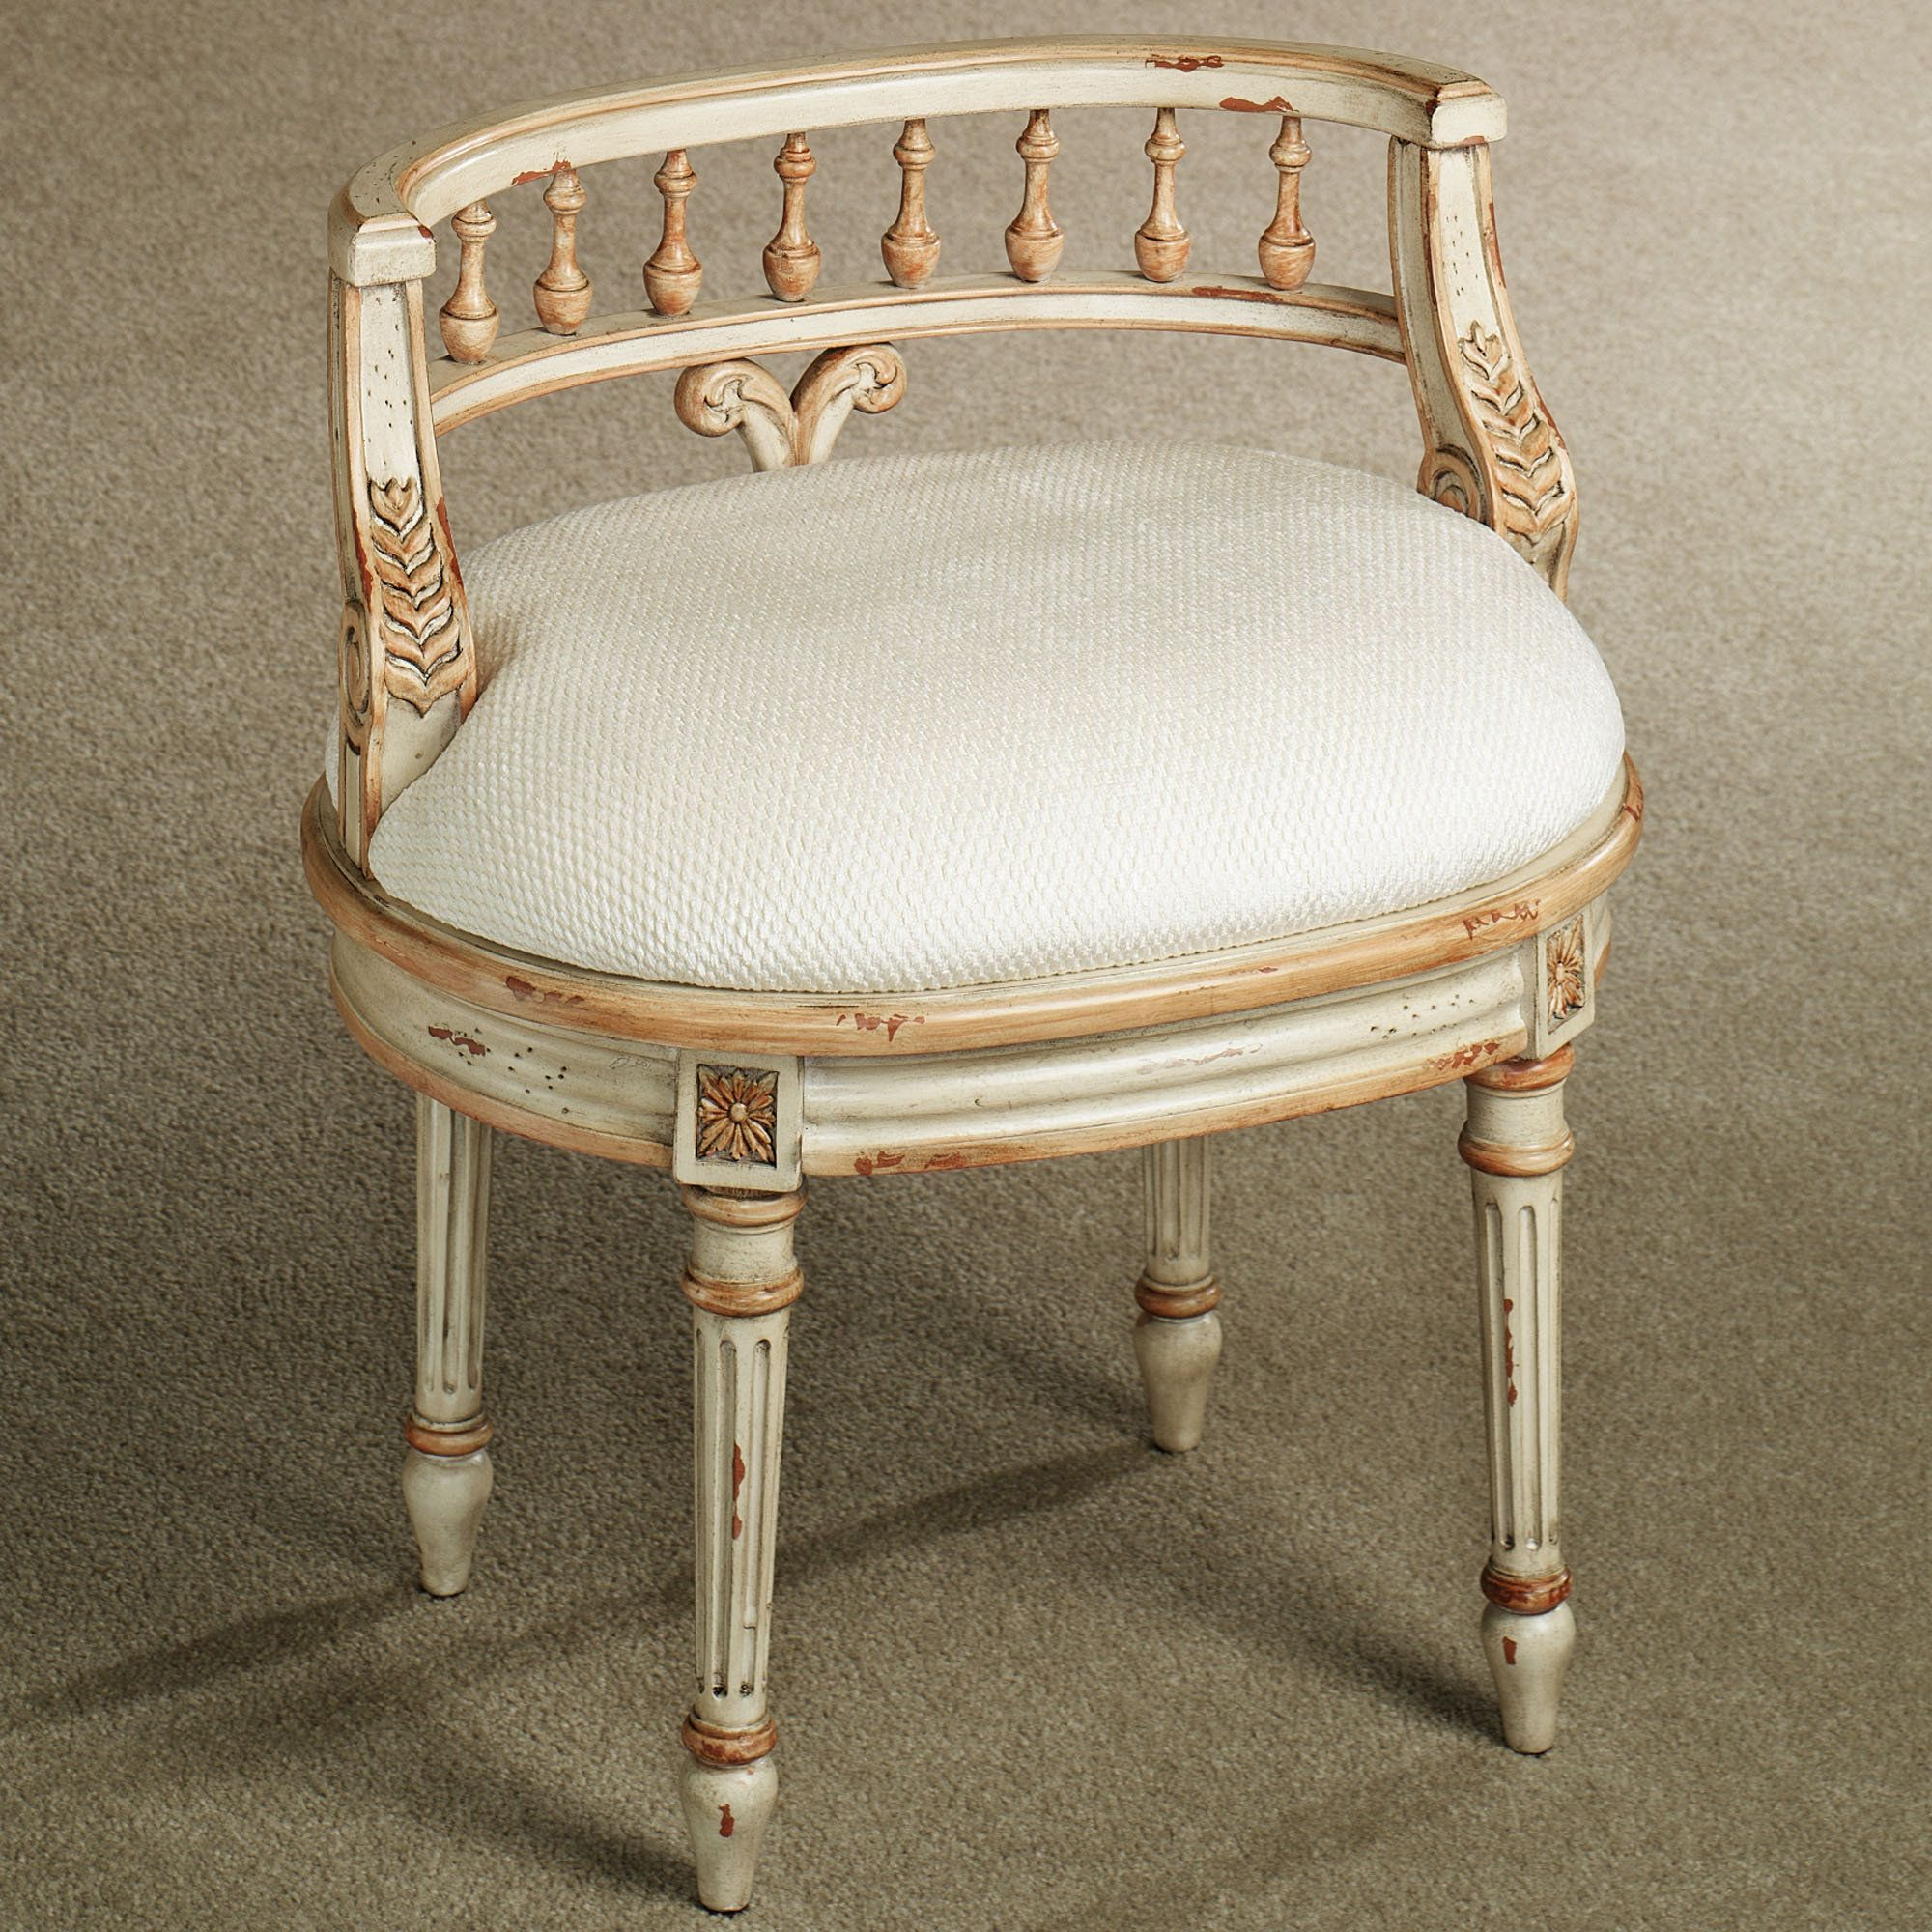 Queensley Upholstered Antique Ivory Vanity Chair | Vanities, Bench